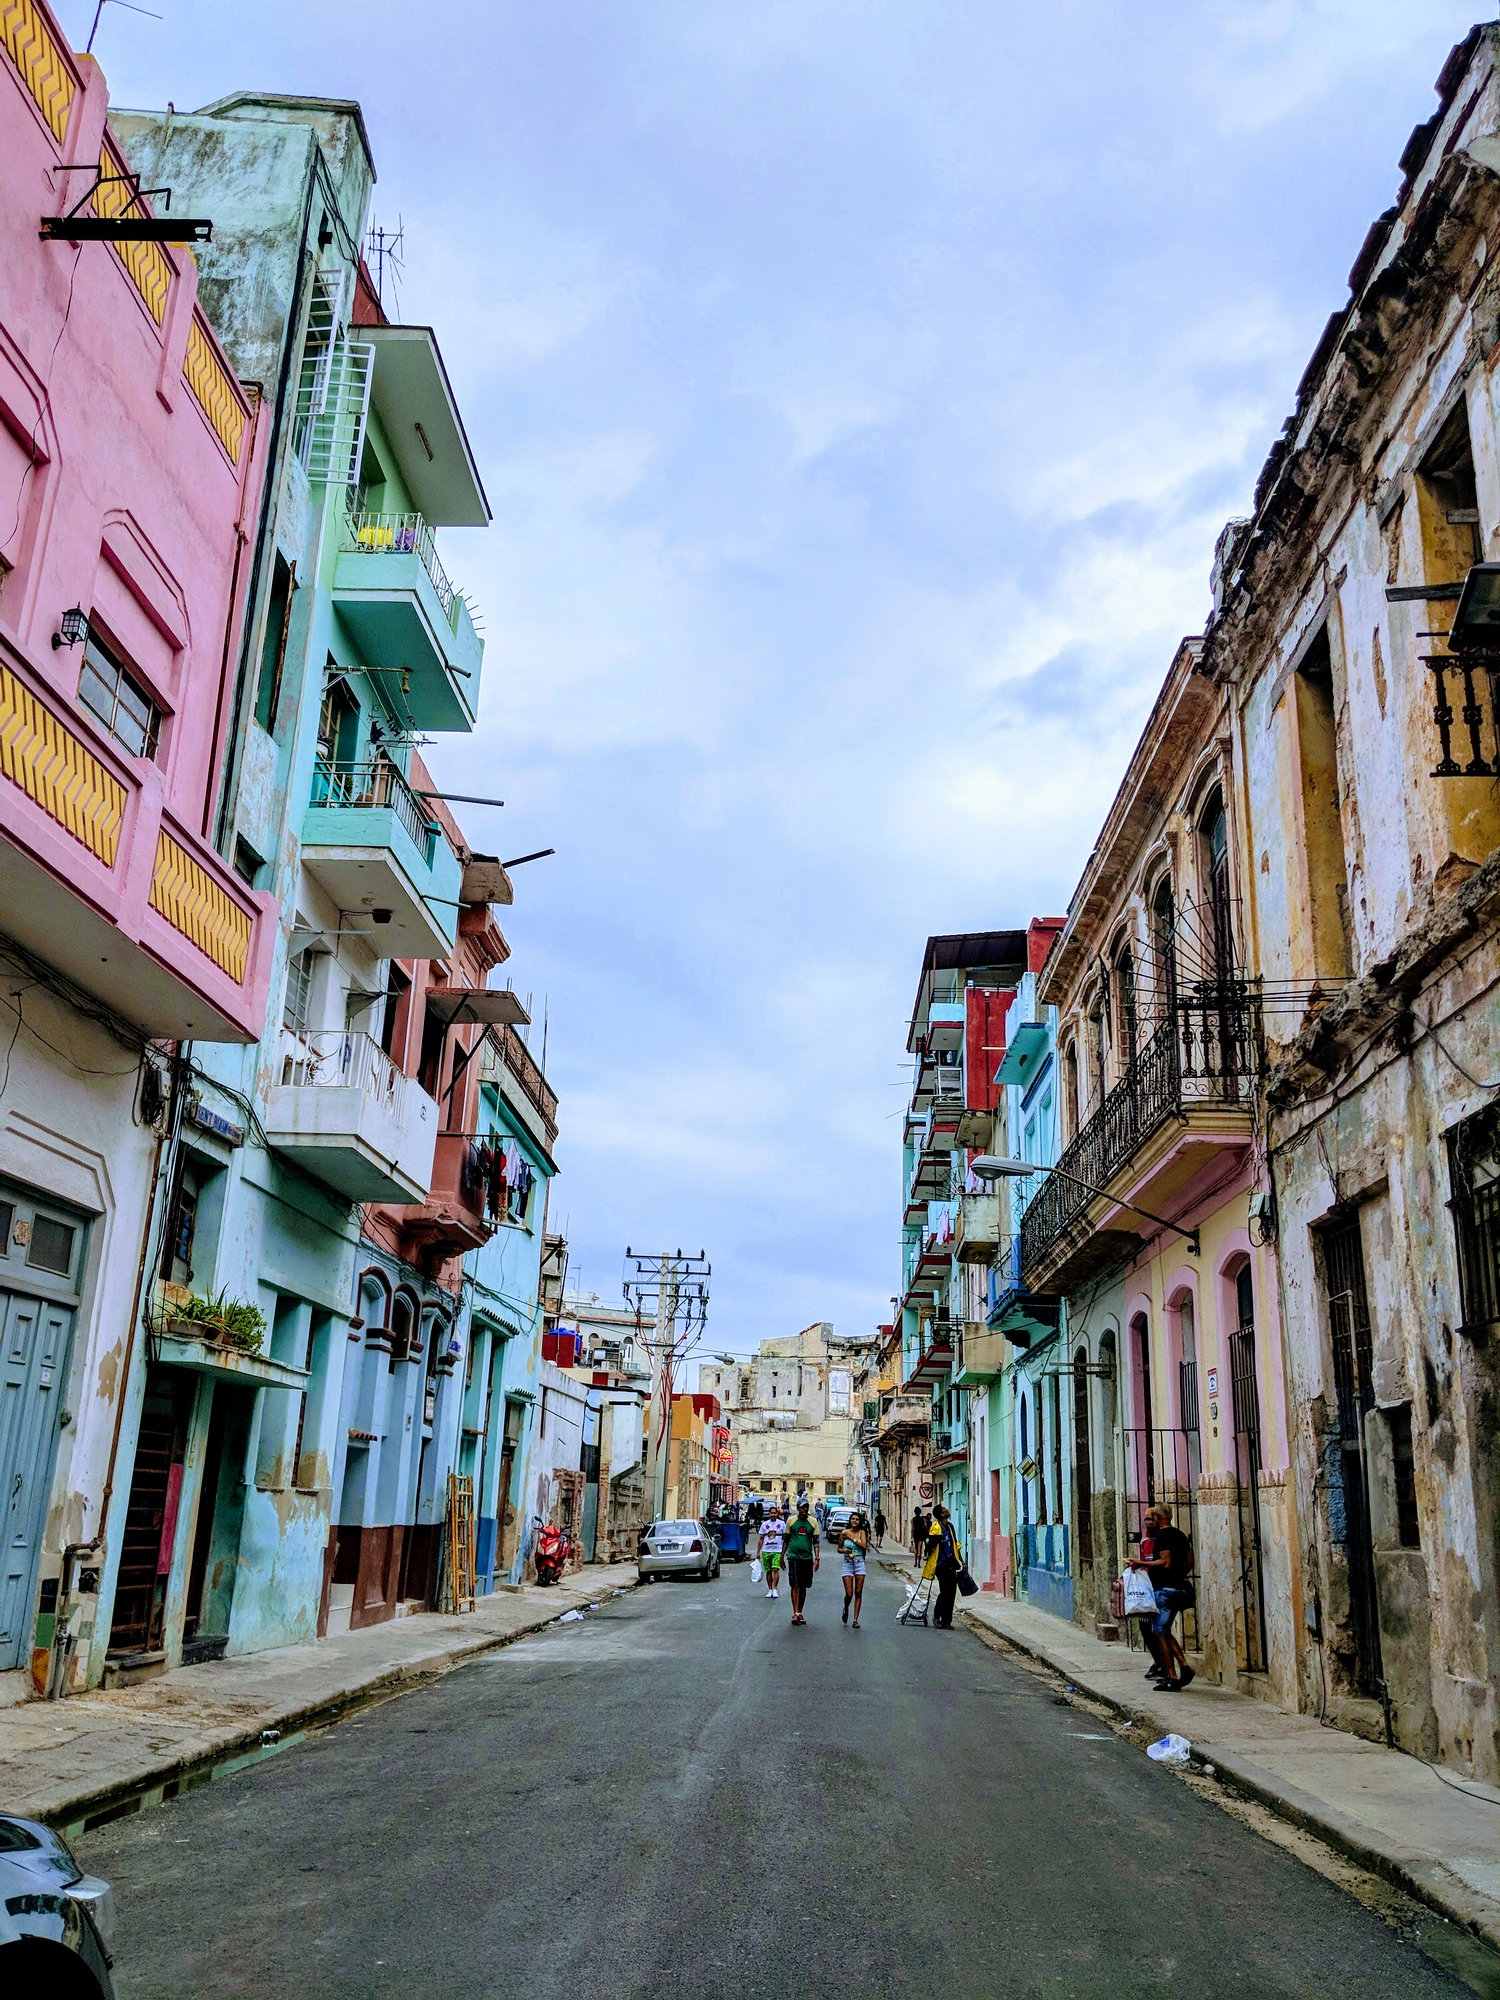 The streets of Old Havana, Cuba.